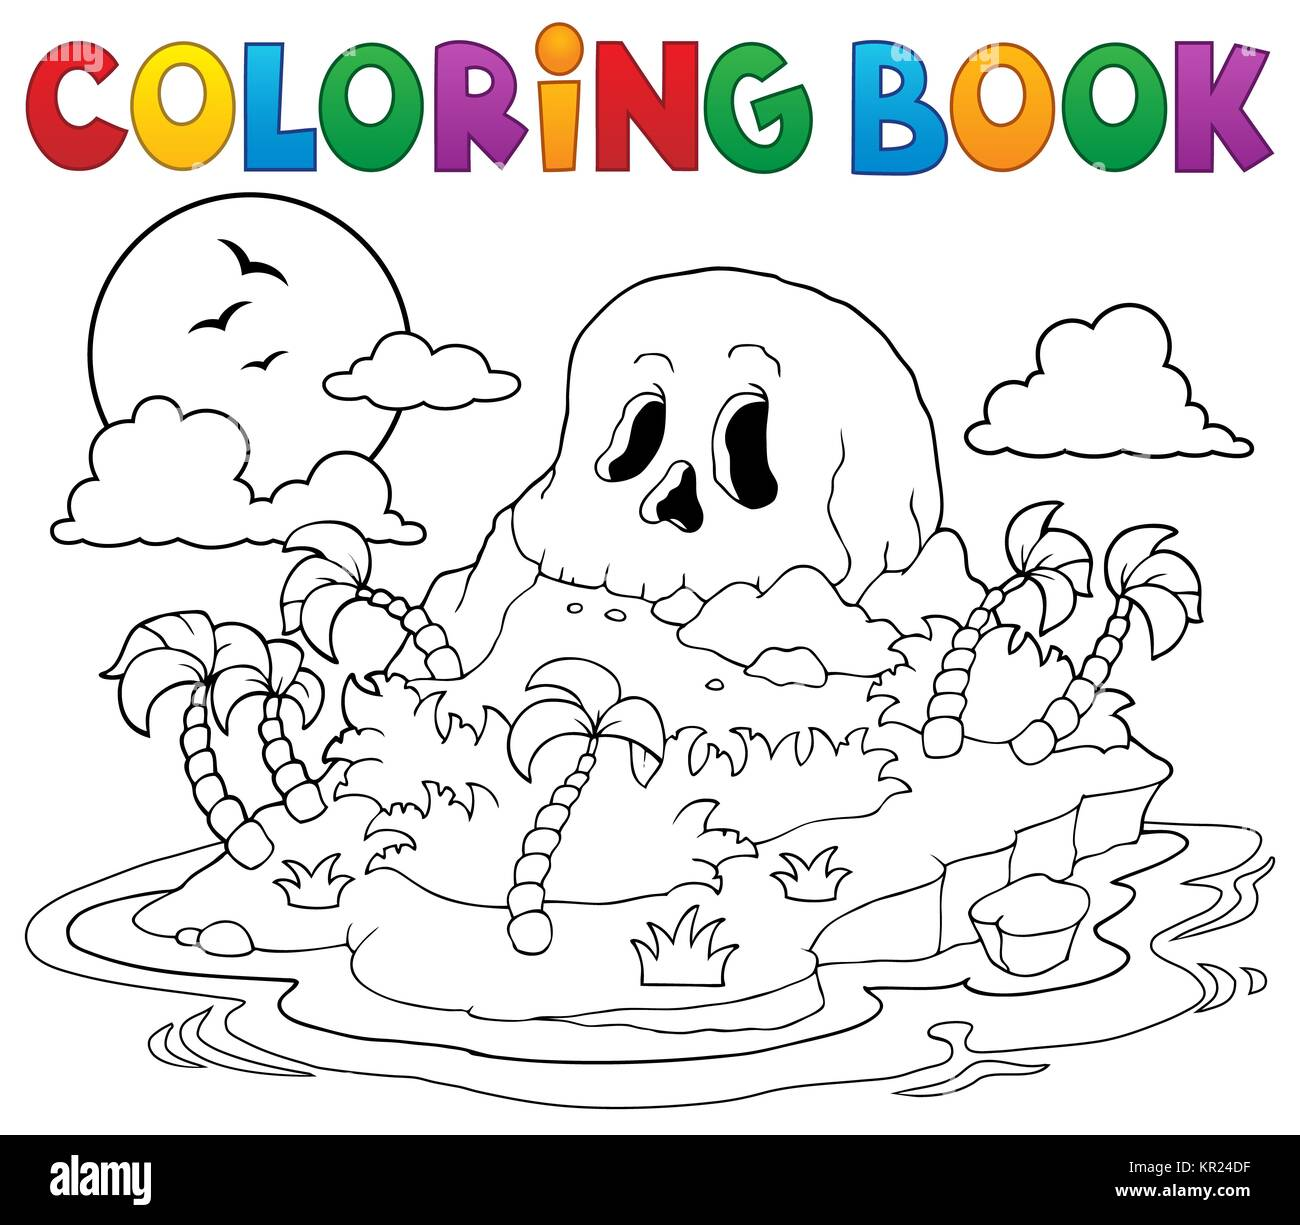 Coloring book pirate skull island Stock Photo